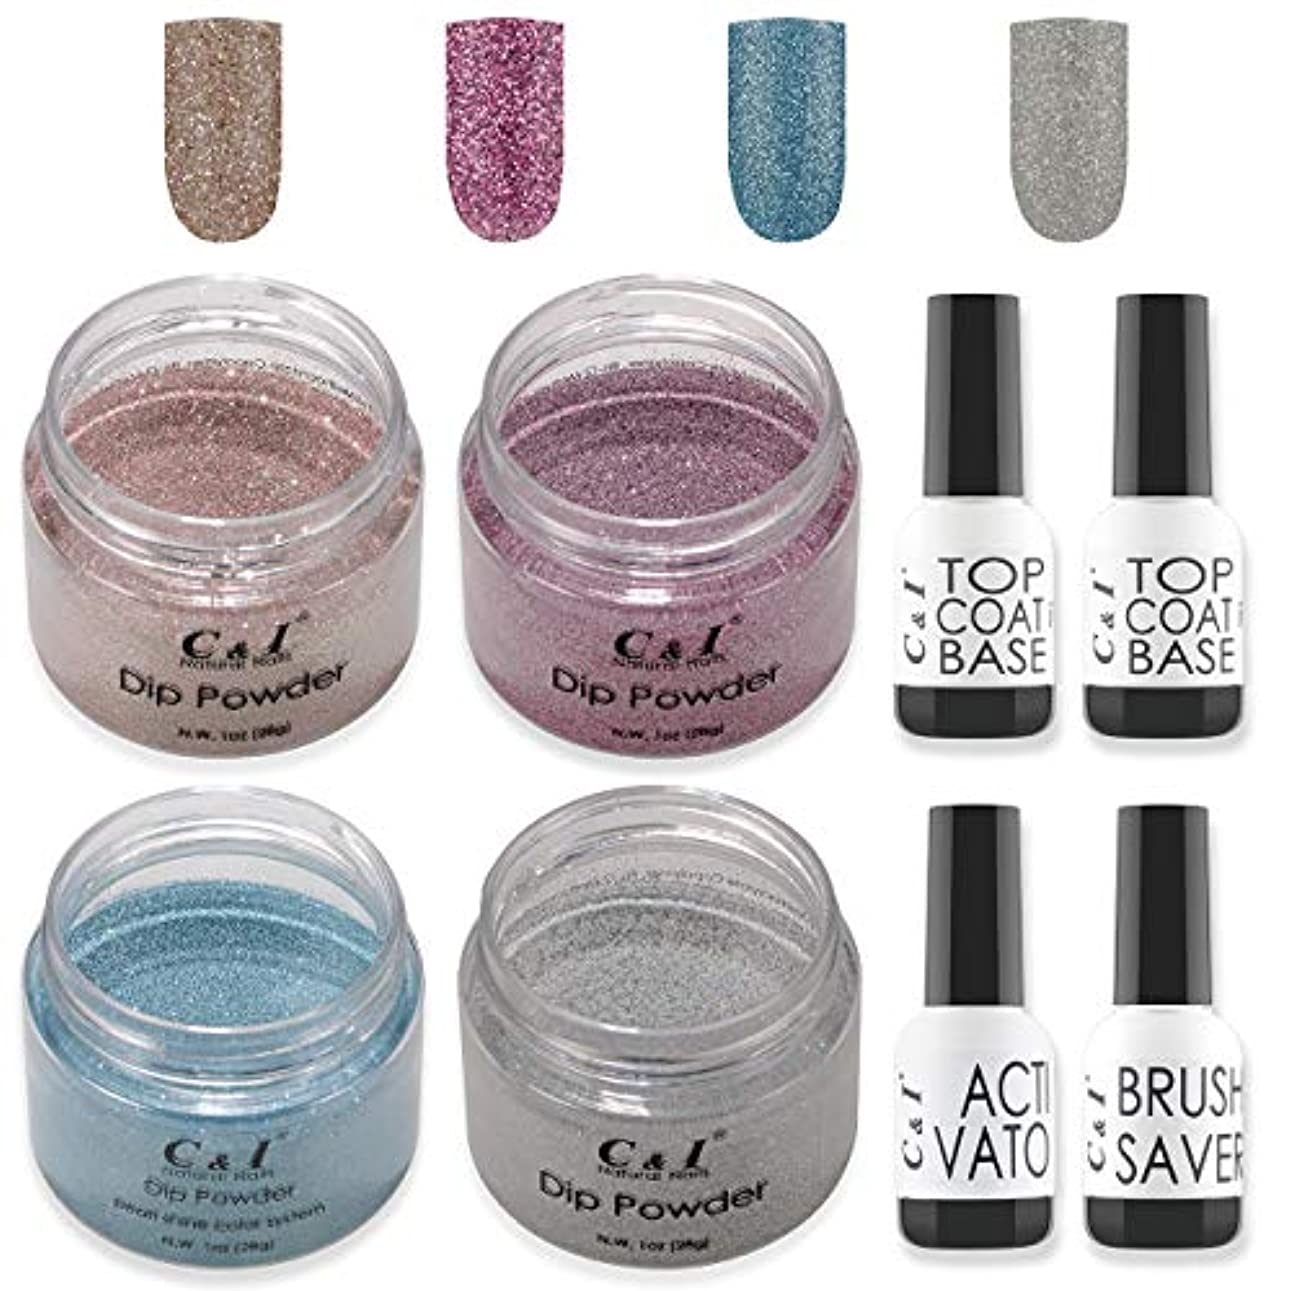 獣ジャンル十代の若者たちC&I Dip Powder Nail Colors & Liquids Set, 4 colors and 4 liquids, glittering nail powder, N.W. 28 g * 4 pcs &...